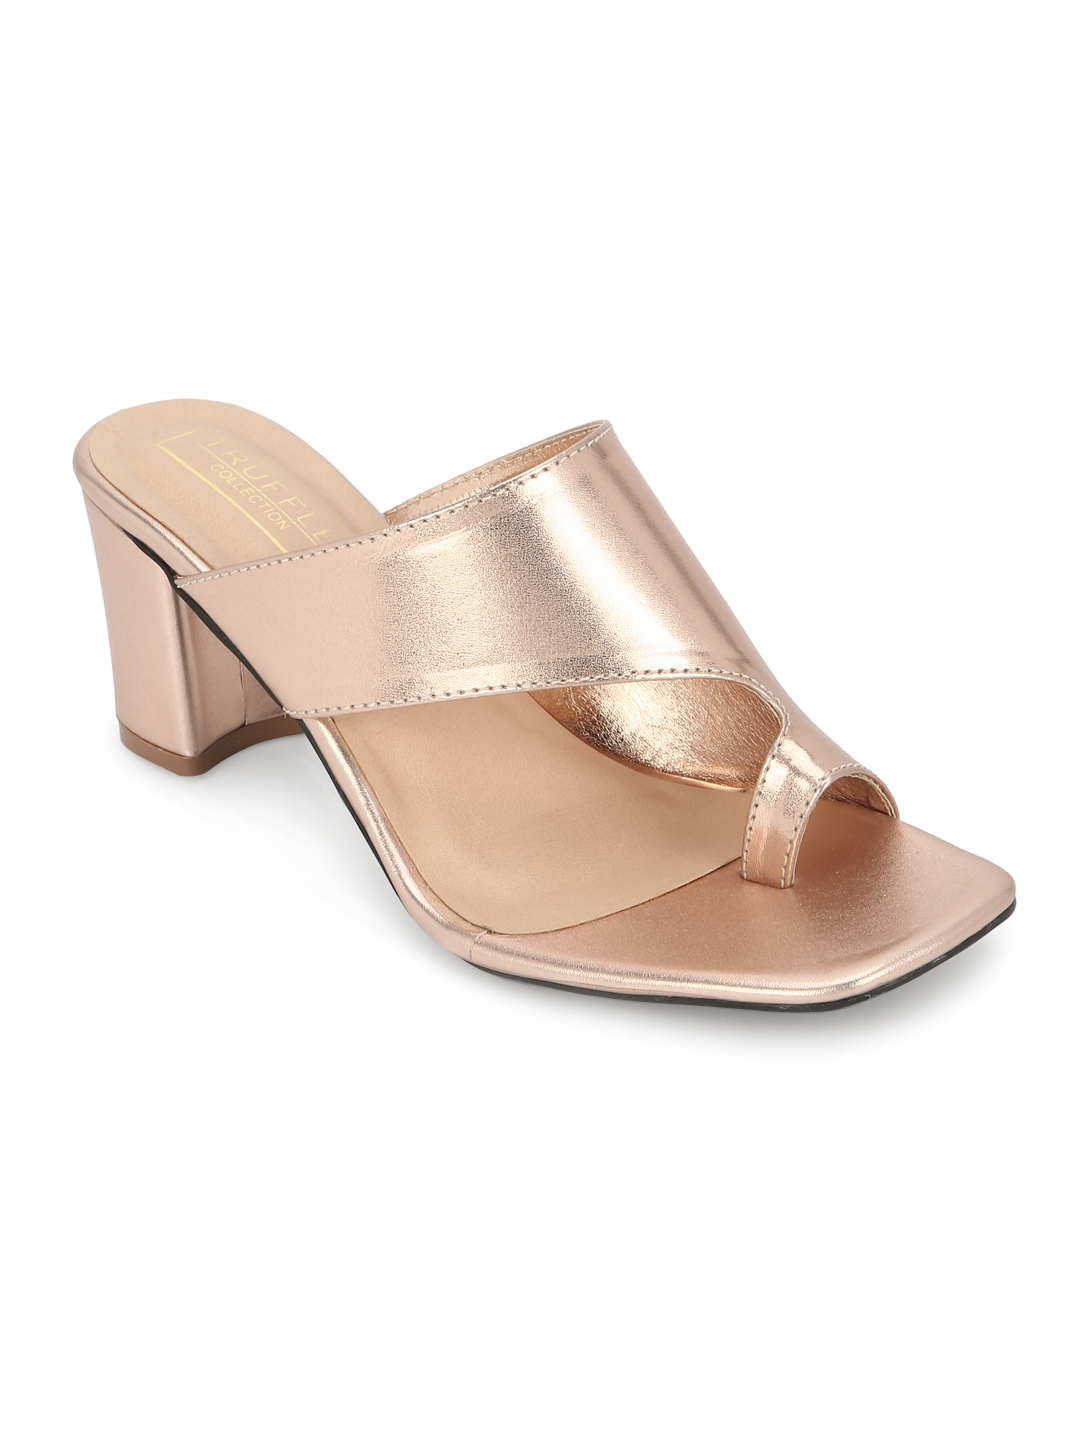 Truffle Collection | Rose Gold PU Square Toe Sandals